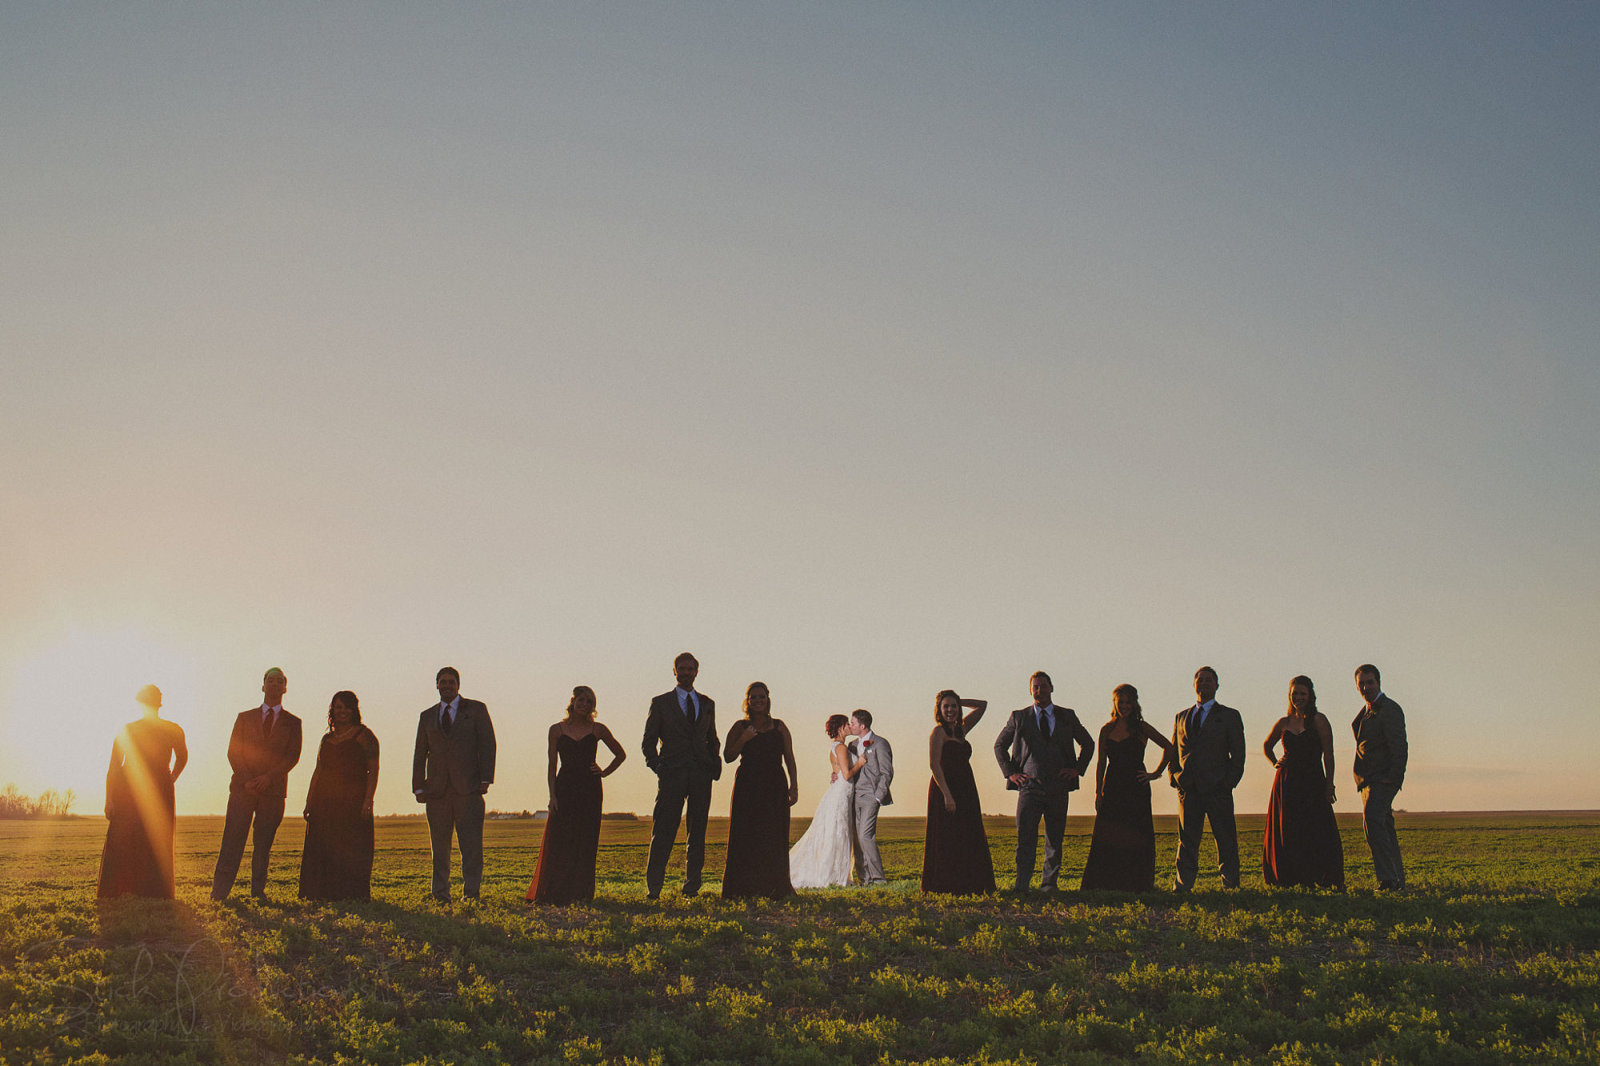 Wedding Party Silhouette